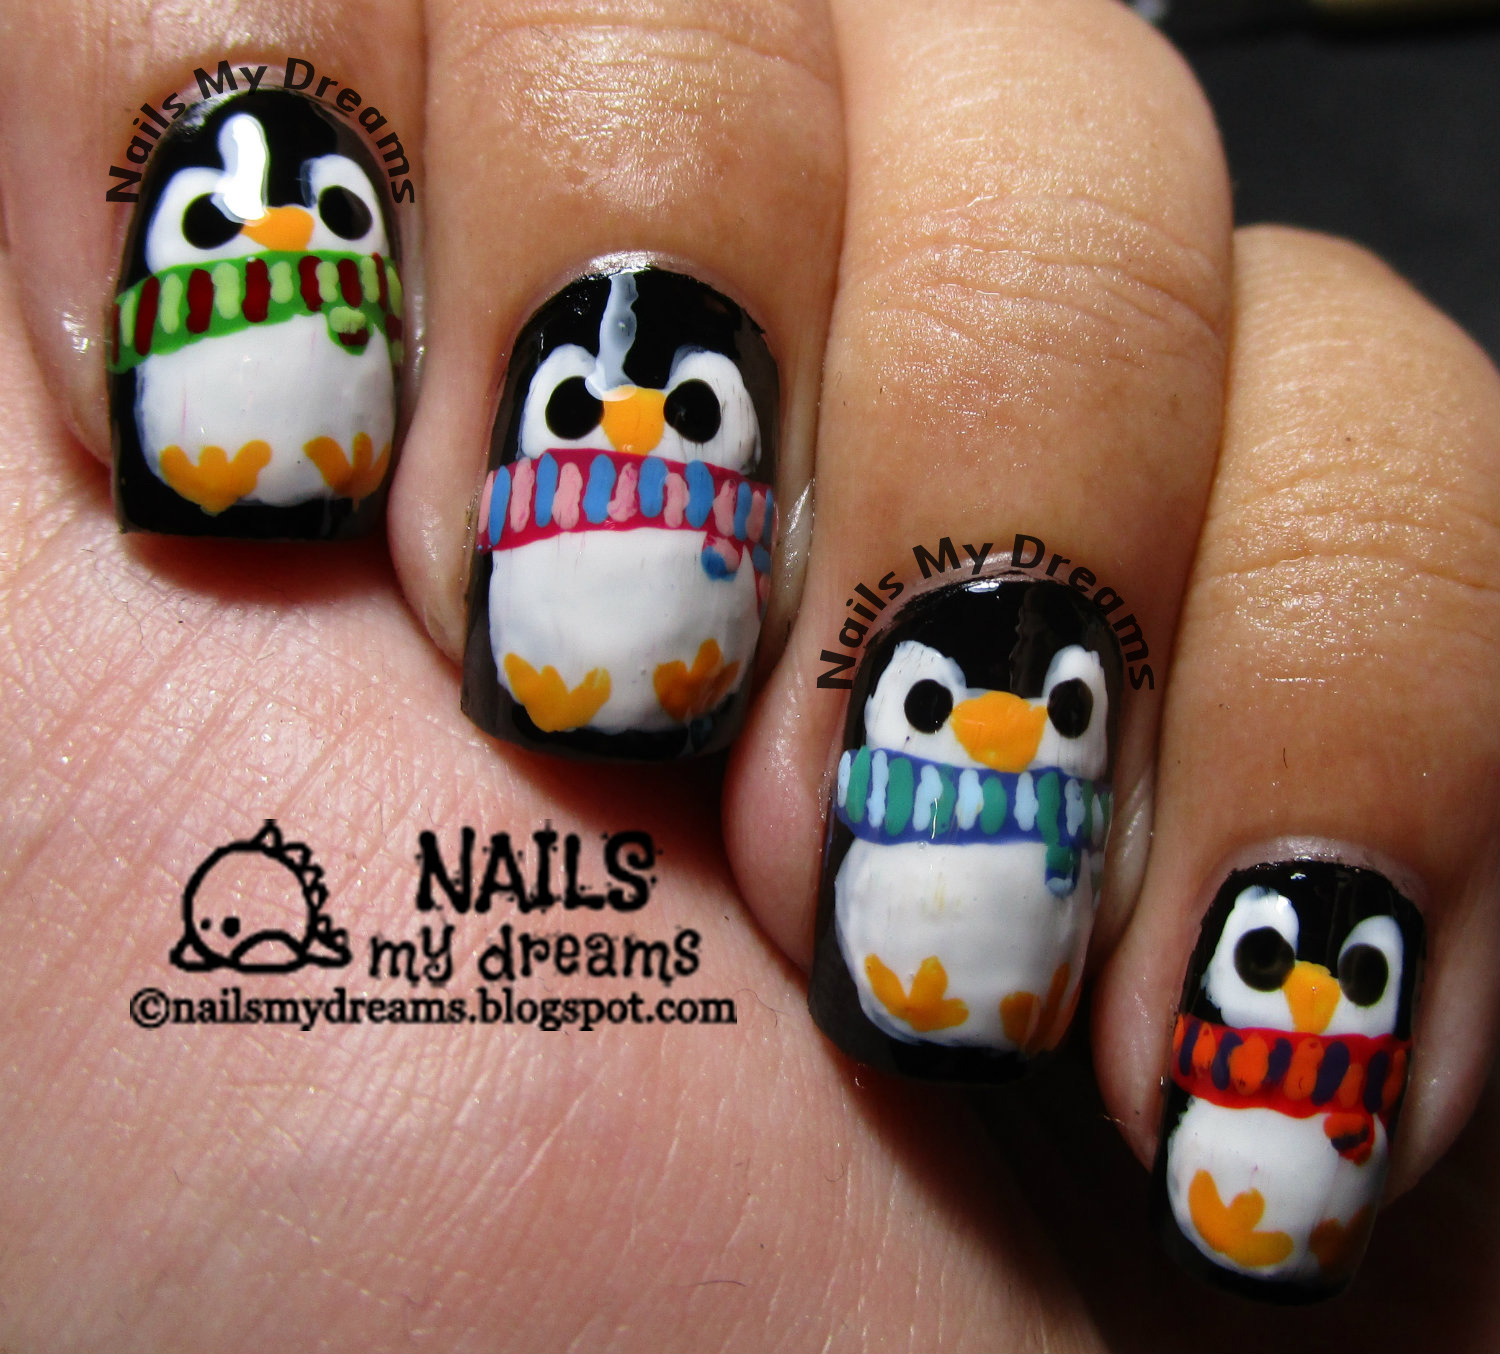 nails my dreams penguins with scarves nail art